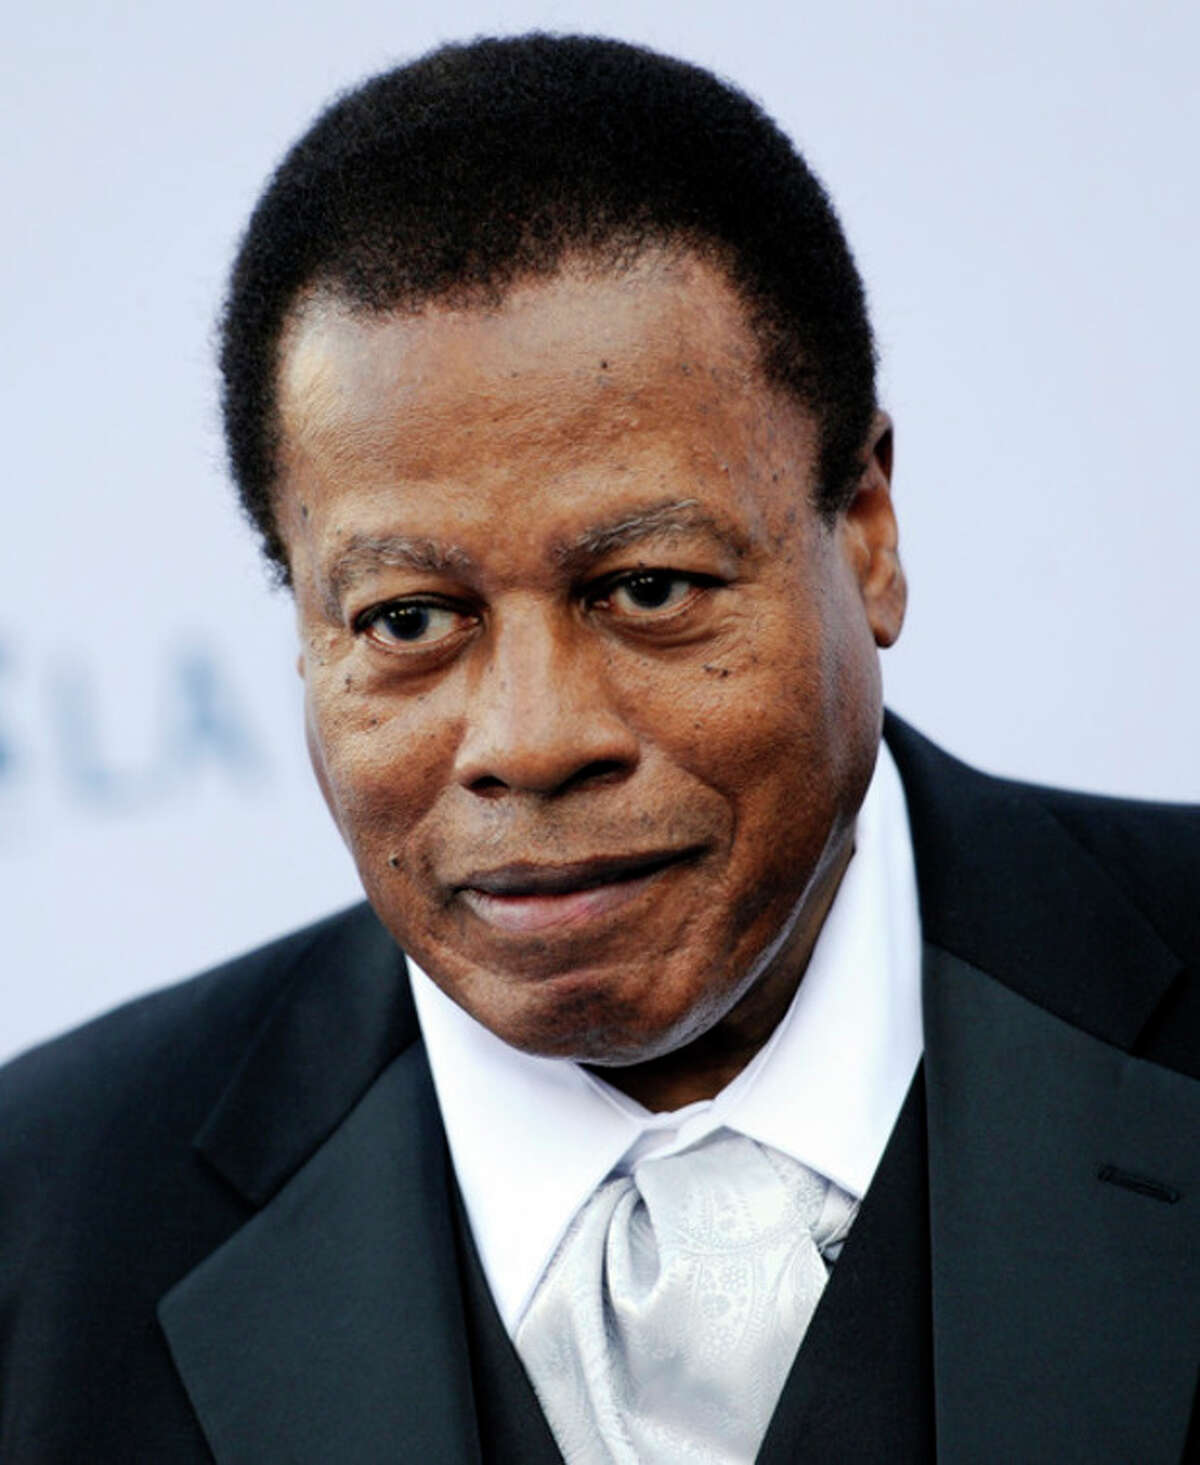 FILE - In this Sept. 27, 2011 file photo, saxophonist Wayne Shorter poses at the Los Angeles Philharmonic Opening Night Gala, in Los Angeles. Shorter, who turned 80 on Aug. 25, 2013, is still going strong. He was a quadruple winner in this year?'s Downbeat magazine critics poll, topping the categories for Jazz Artist, Jazz Album, Jazz Group and Soprano Saxophone. Earlier this year, he was awarded the UNESCO Medal of the Five Continents award for his lifetime contribution to jazz. (AP Photo/Chris Pizzello, File)